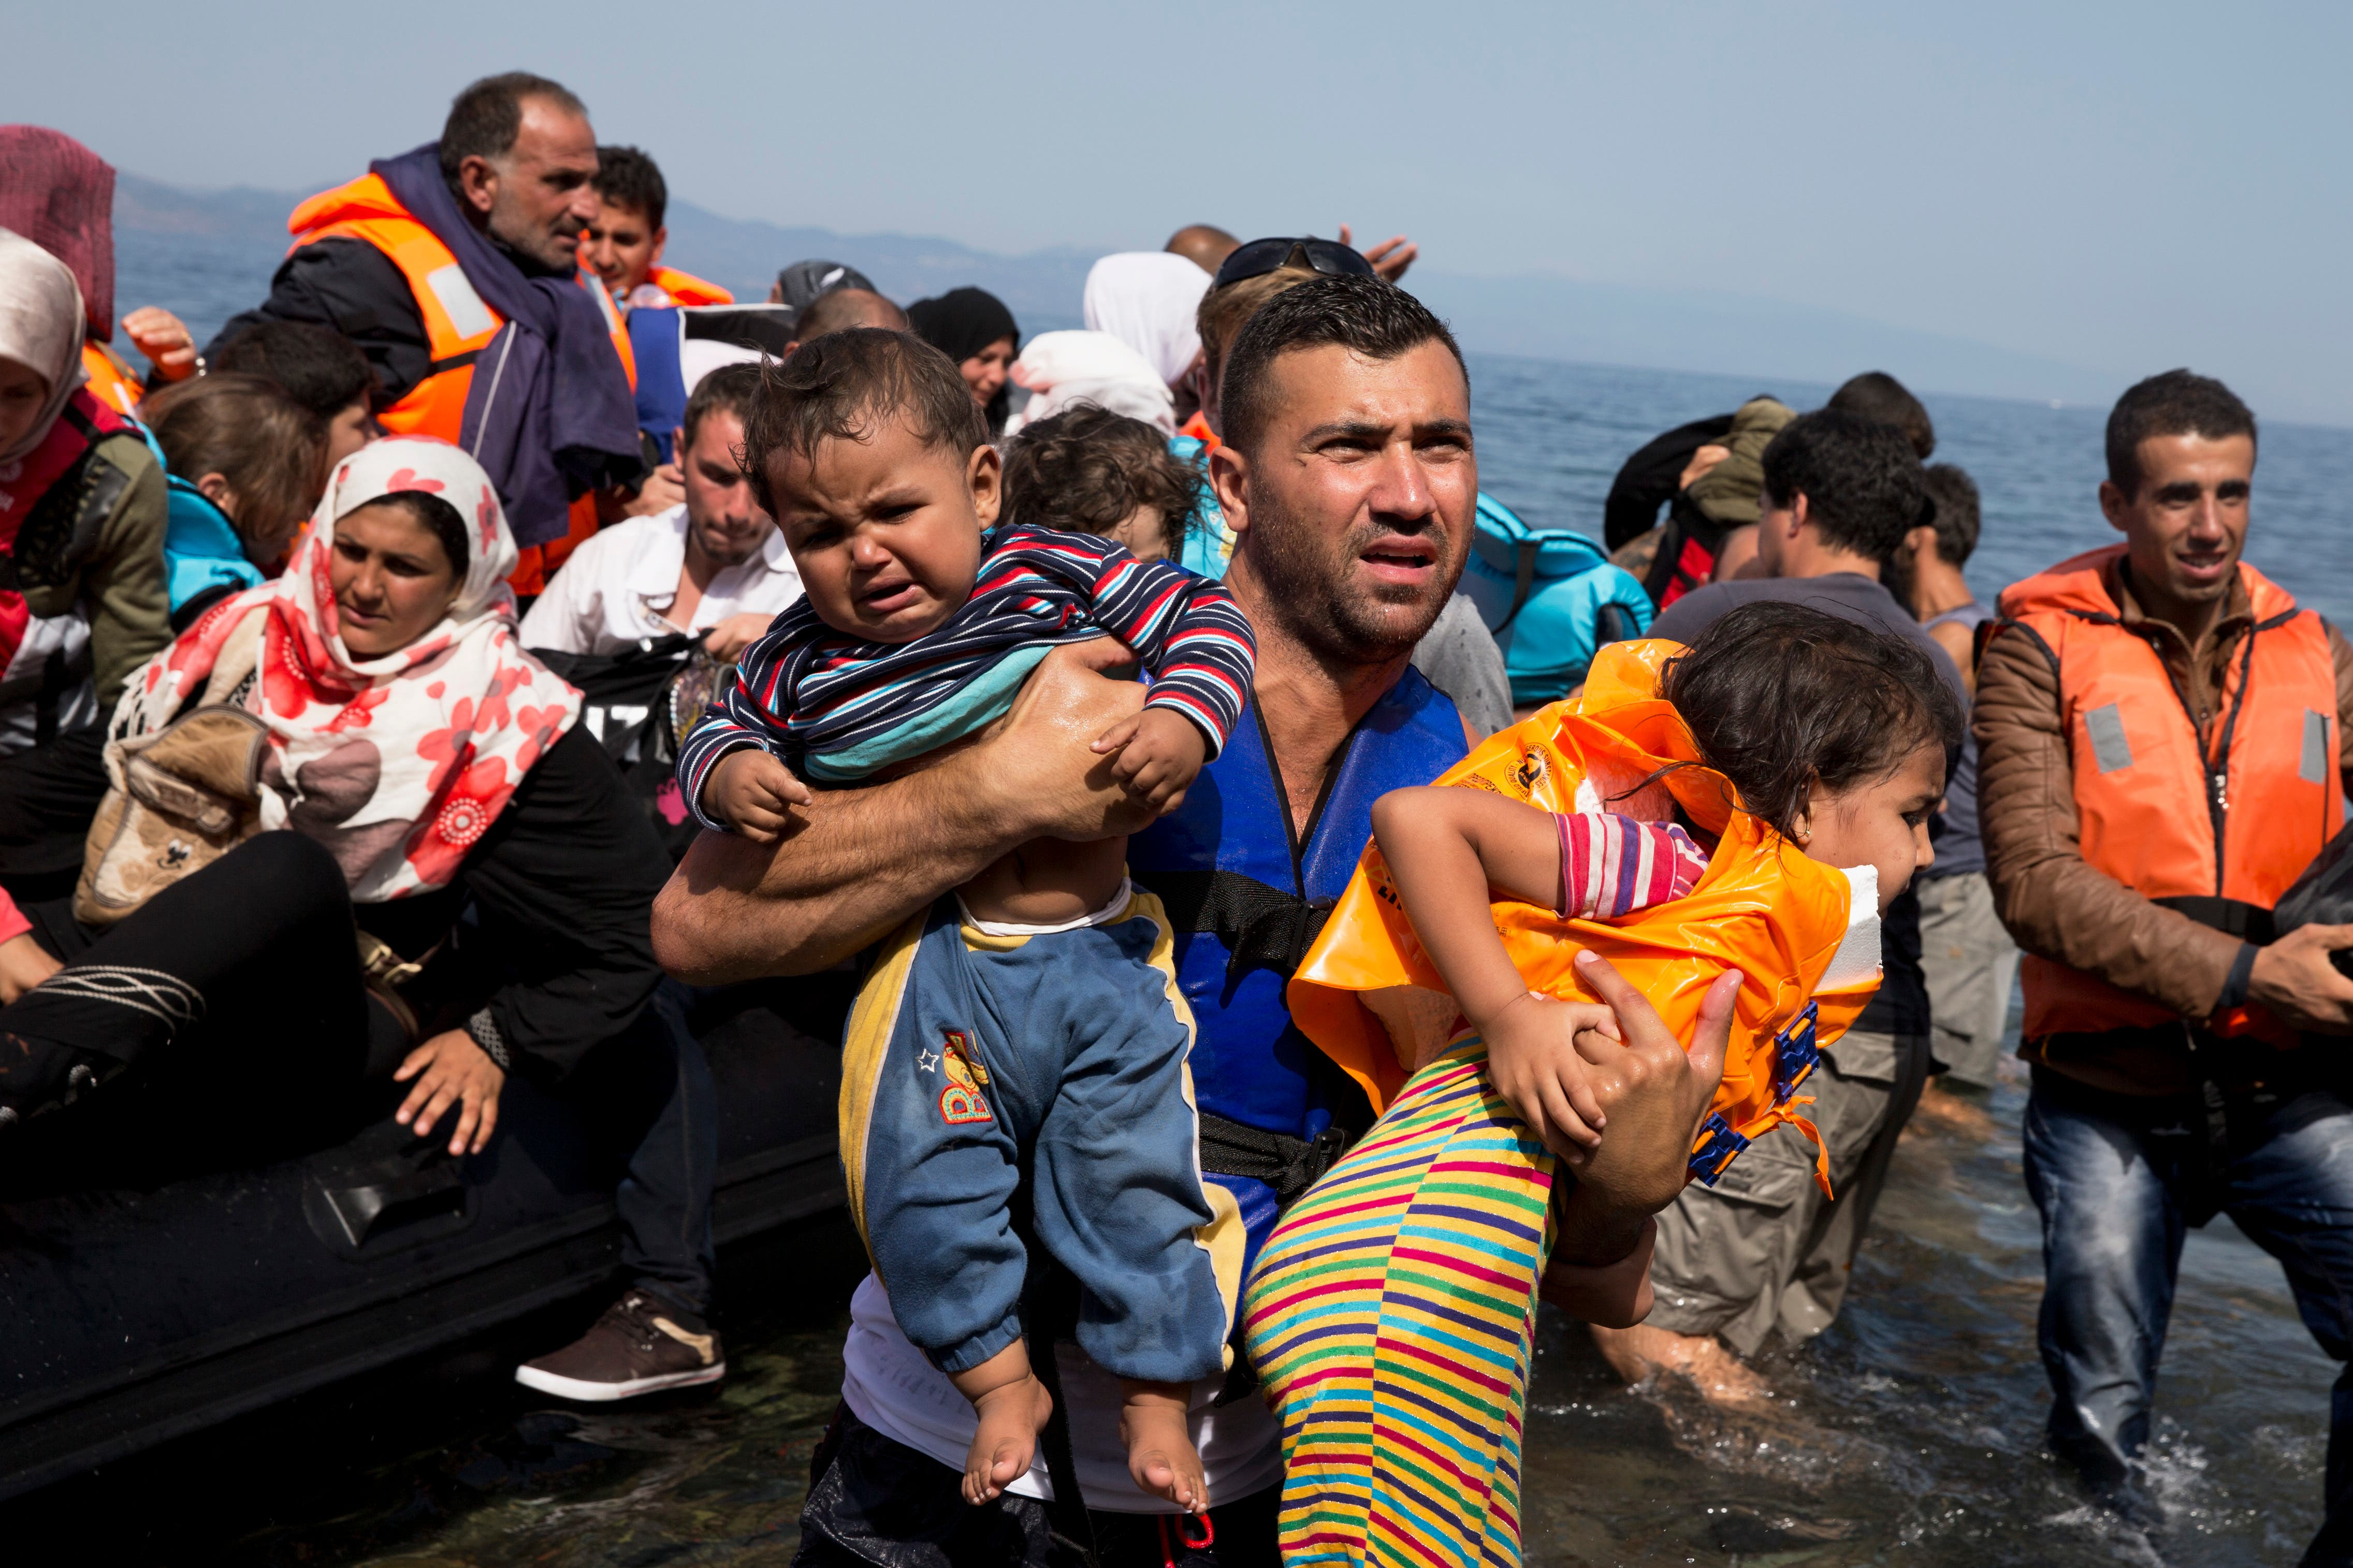 Syrian refugees arrive aboard a dinghy after crossing from Turkey to the island of Lesbos, Greece. (File photo: AP)